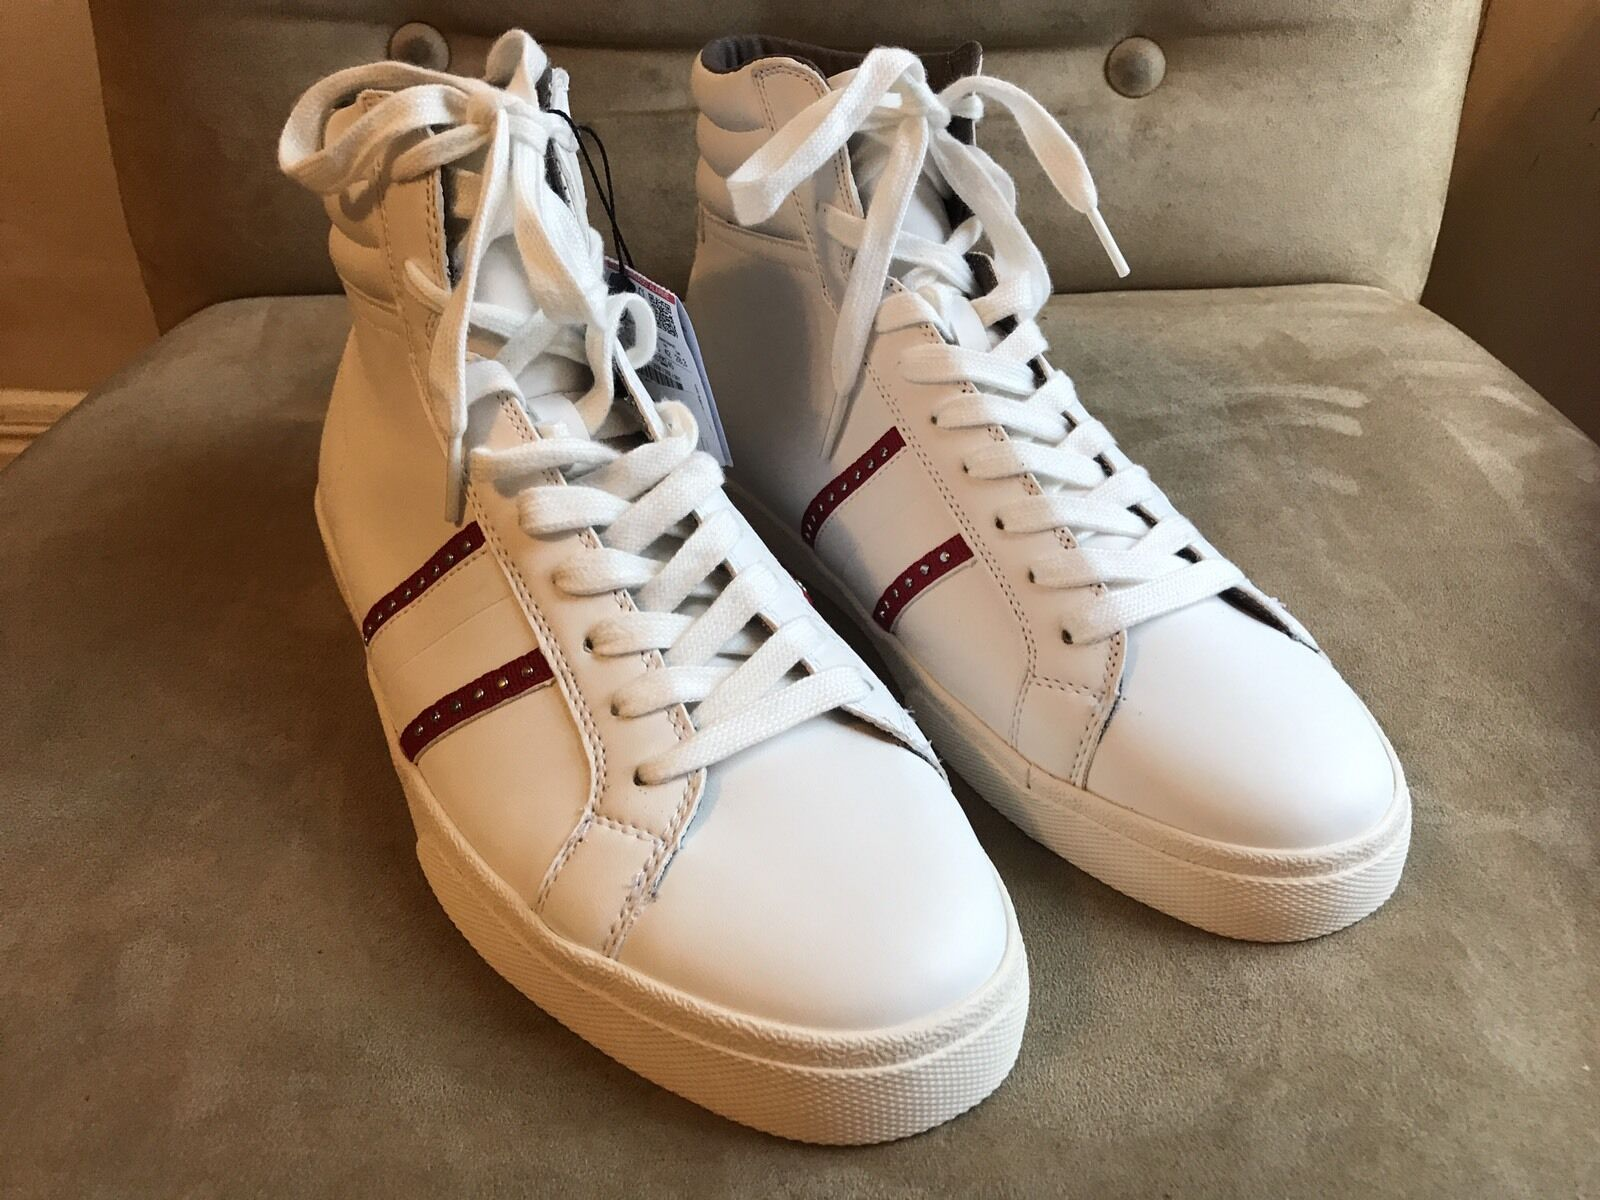 ZARA MAN WHITE UP RED STUDDED STRIPES LACE UP WHITE HIGH TOP SNEAKERS SHOES 11 44 10 28.5 c6fab0